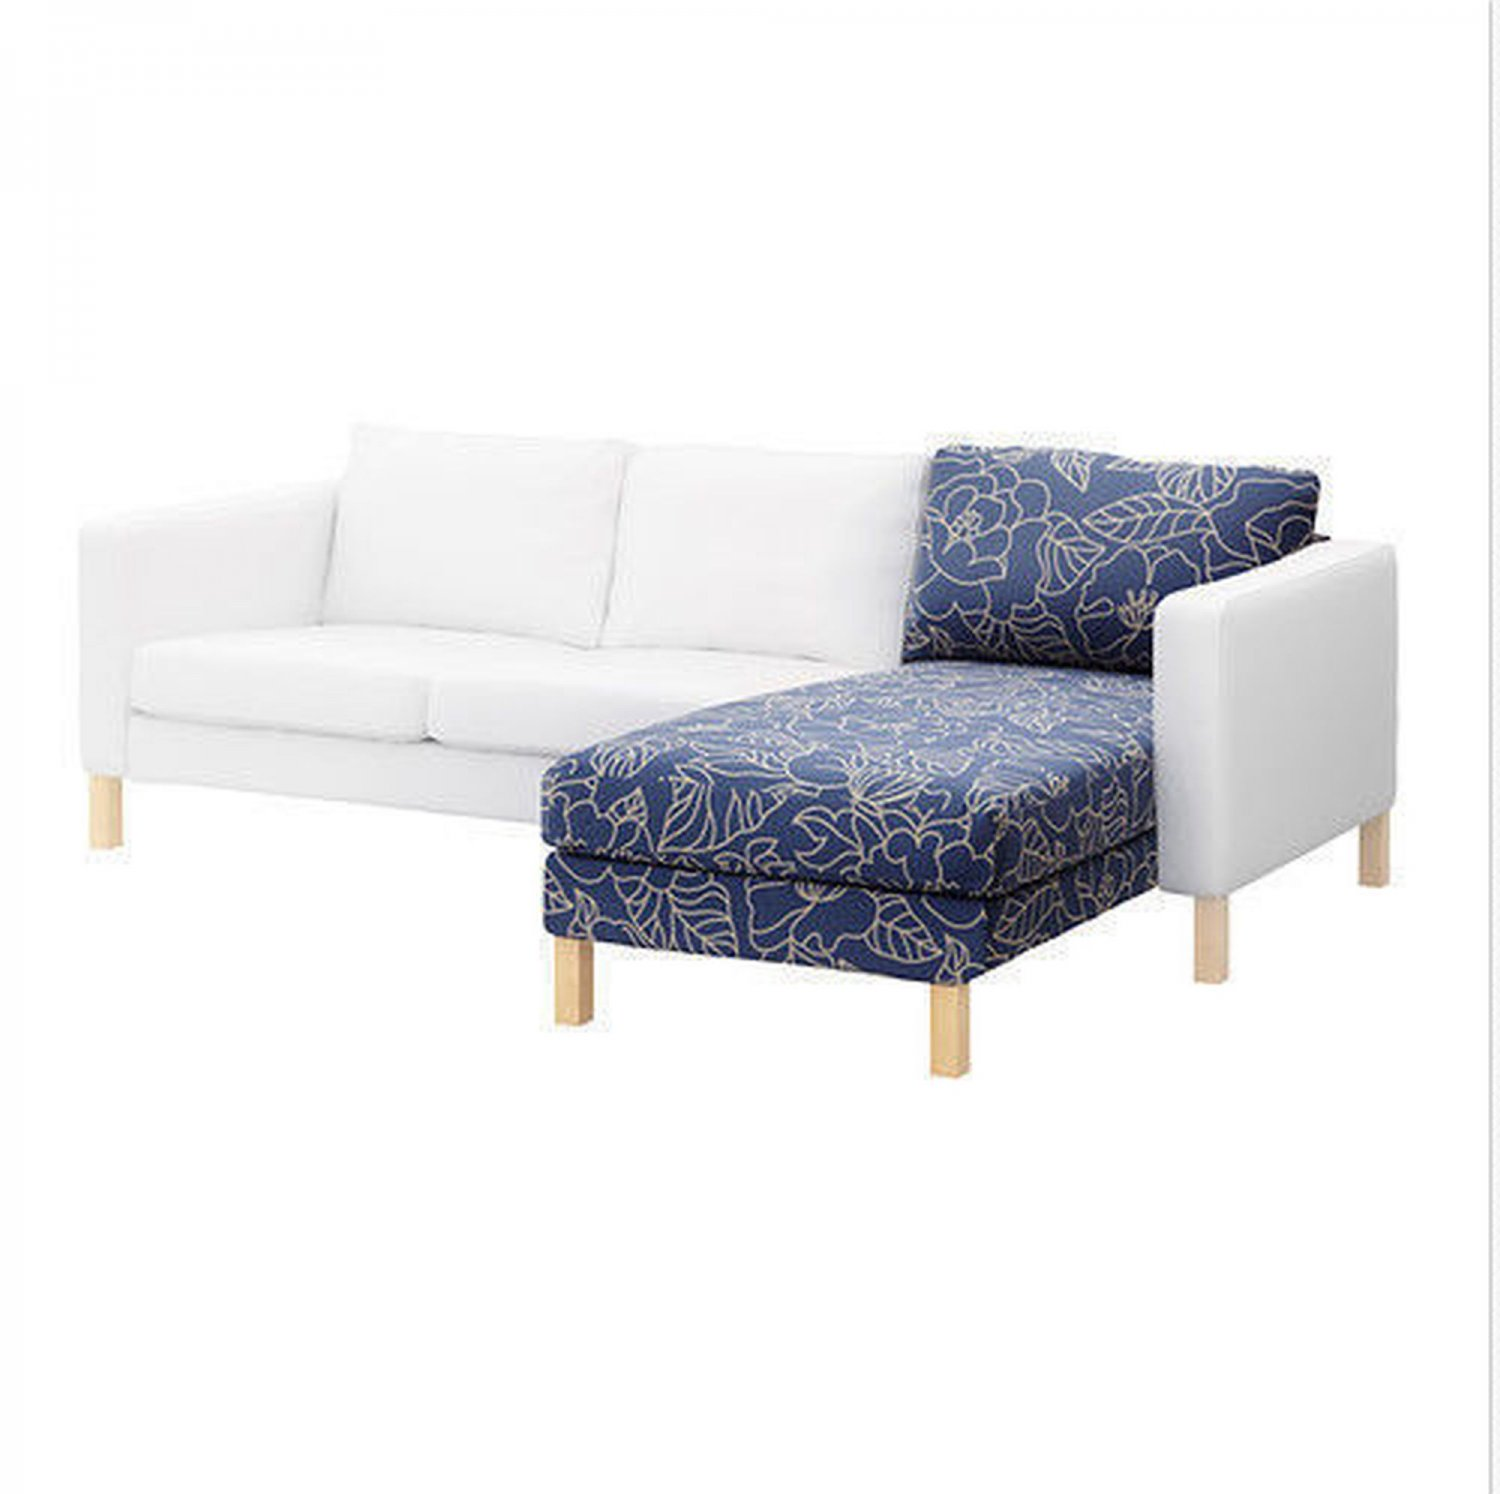 Ikea karlstad add on chaise longue slipcover cover for Chaise longue canada